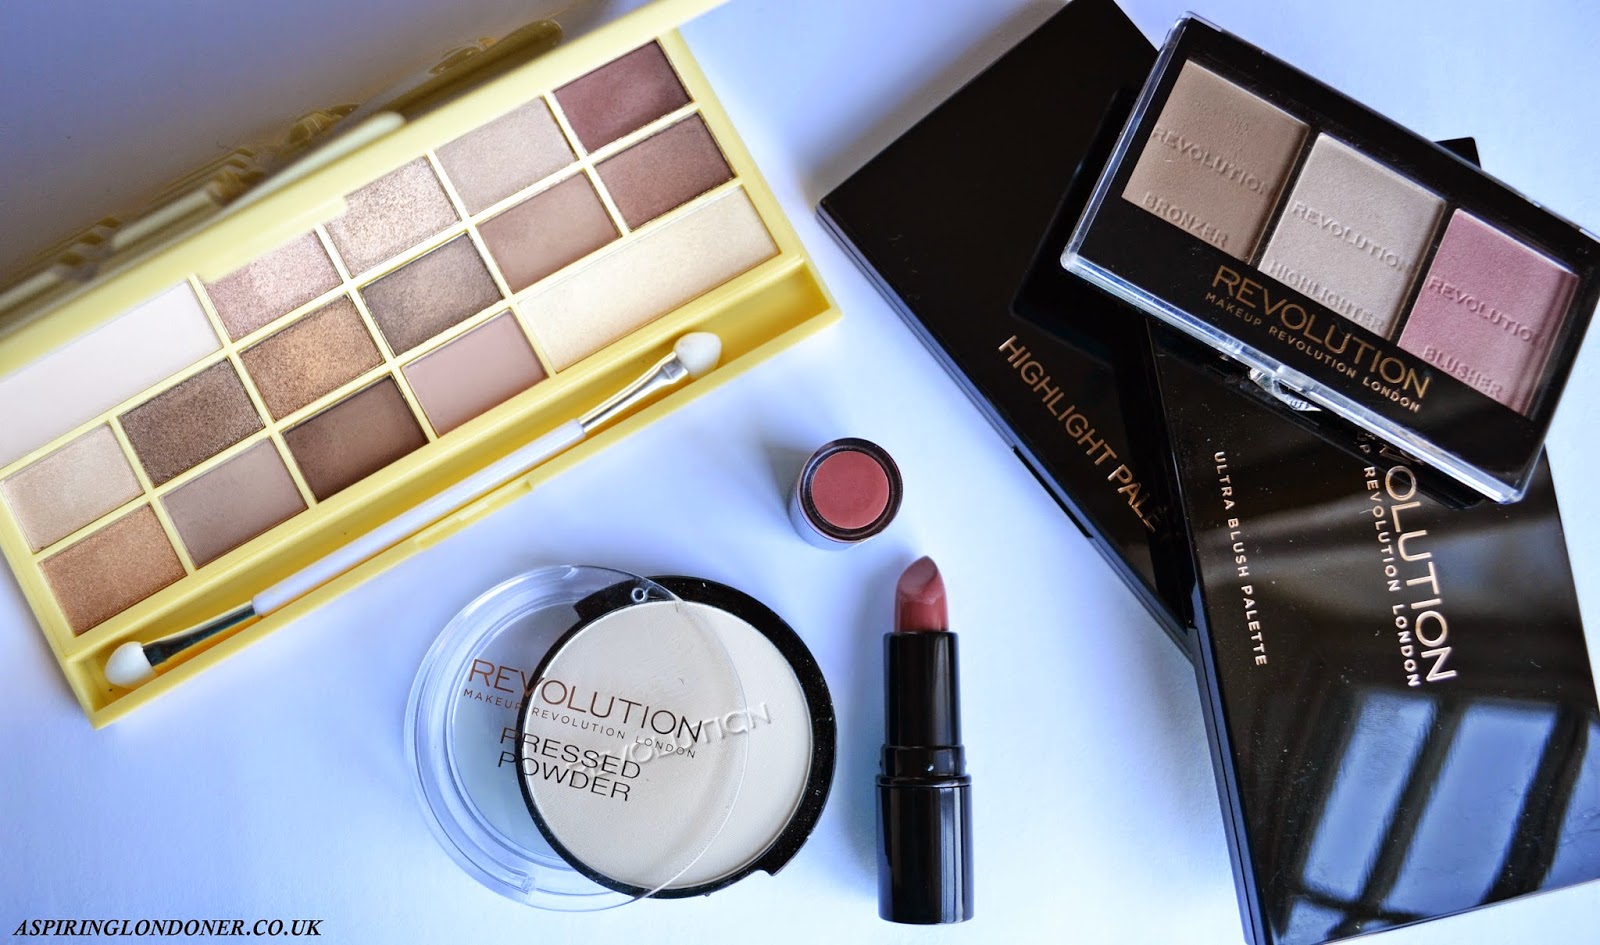 Best Of Makeup Revolution Review - Aspiring Londoner